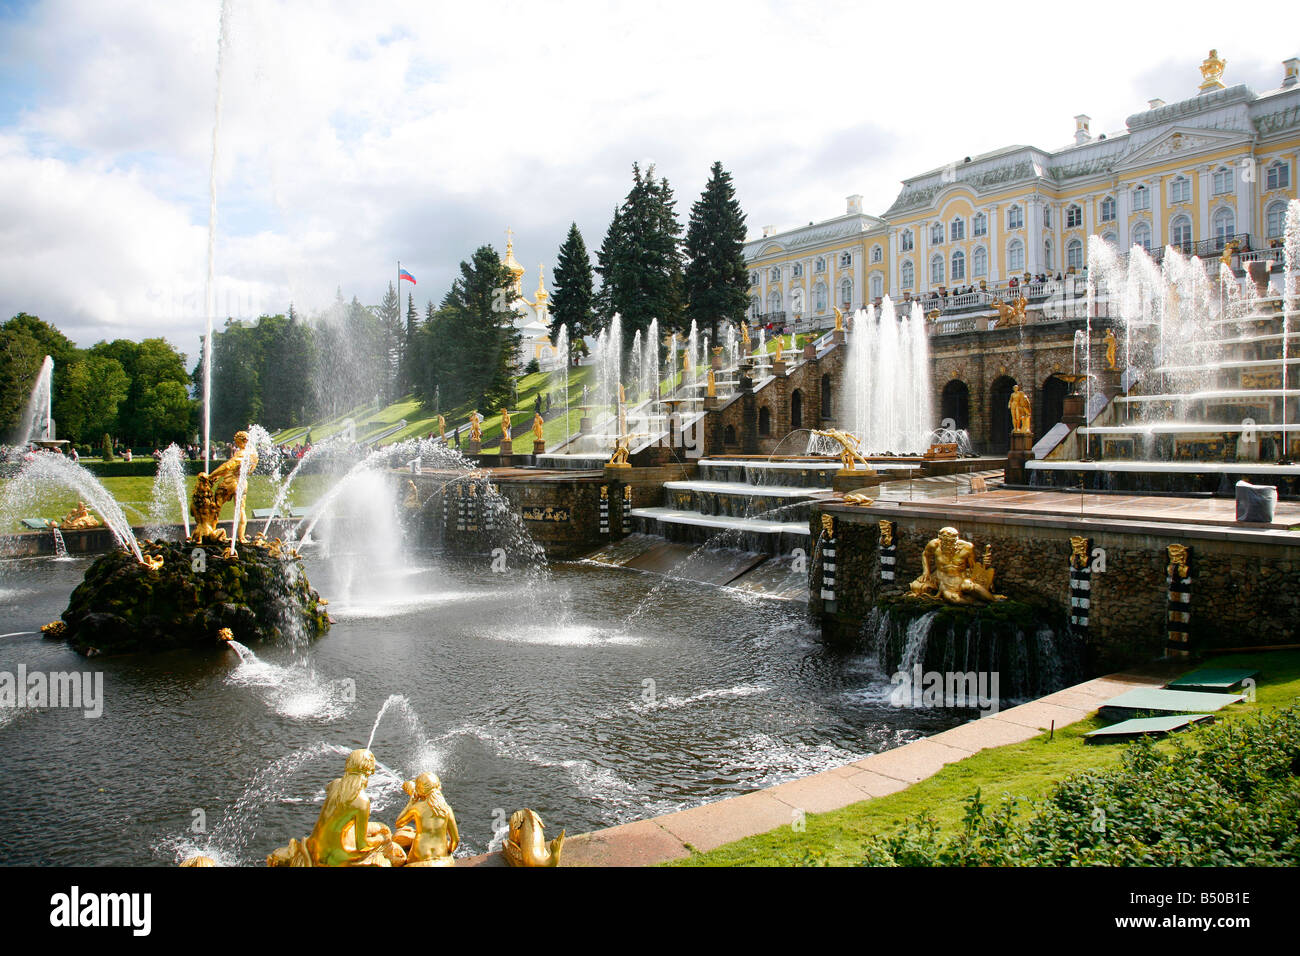 Aug 2008 - The Grand Cascade at Peterhof Palace, St Petersburg Russia Stock Photo